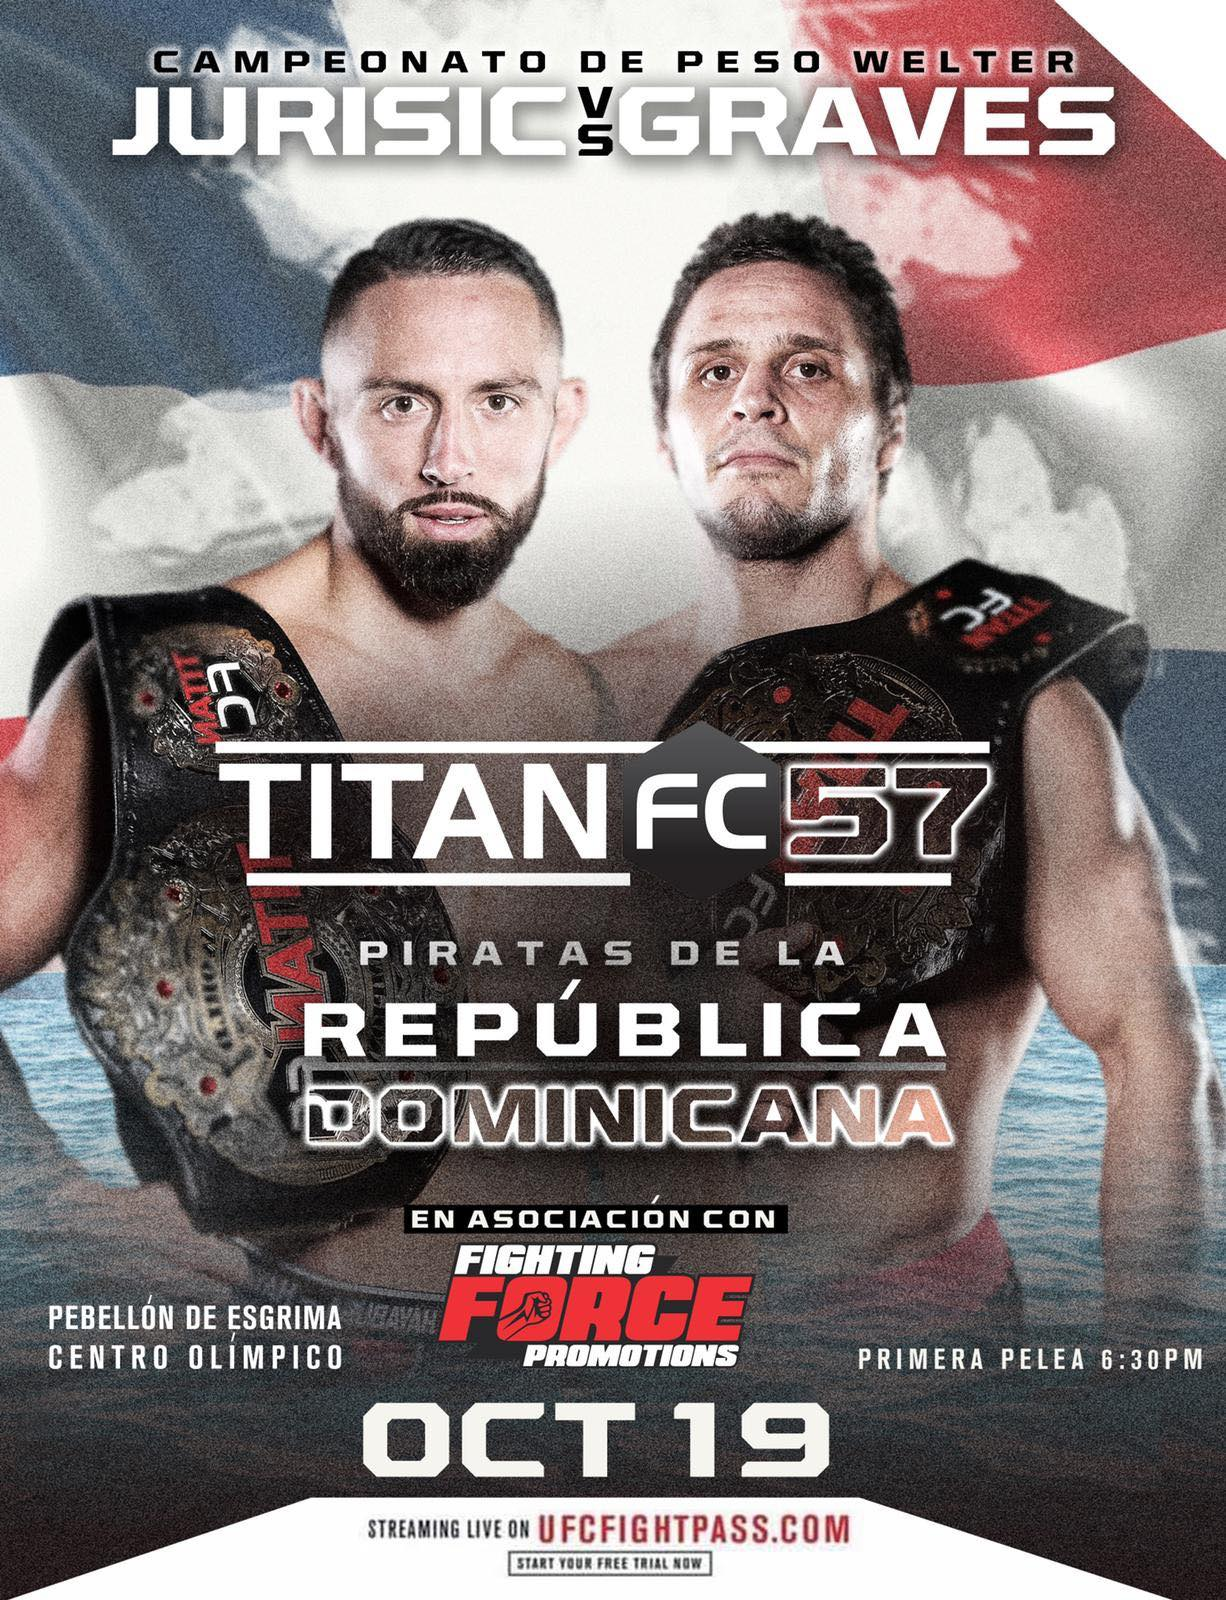 Undisputed welterweight champion to be declared in the Dominican Republic at Titan FC 57 -